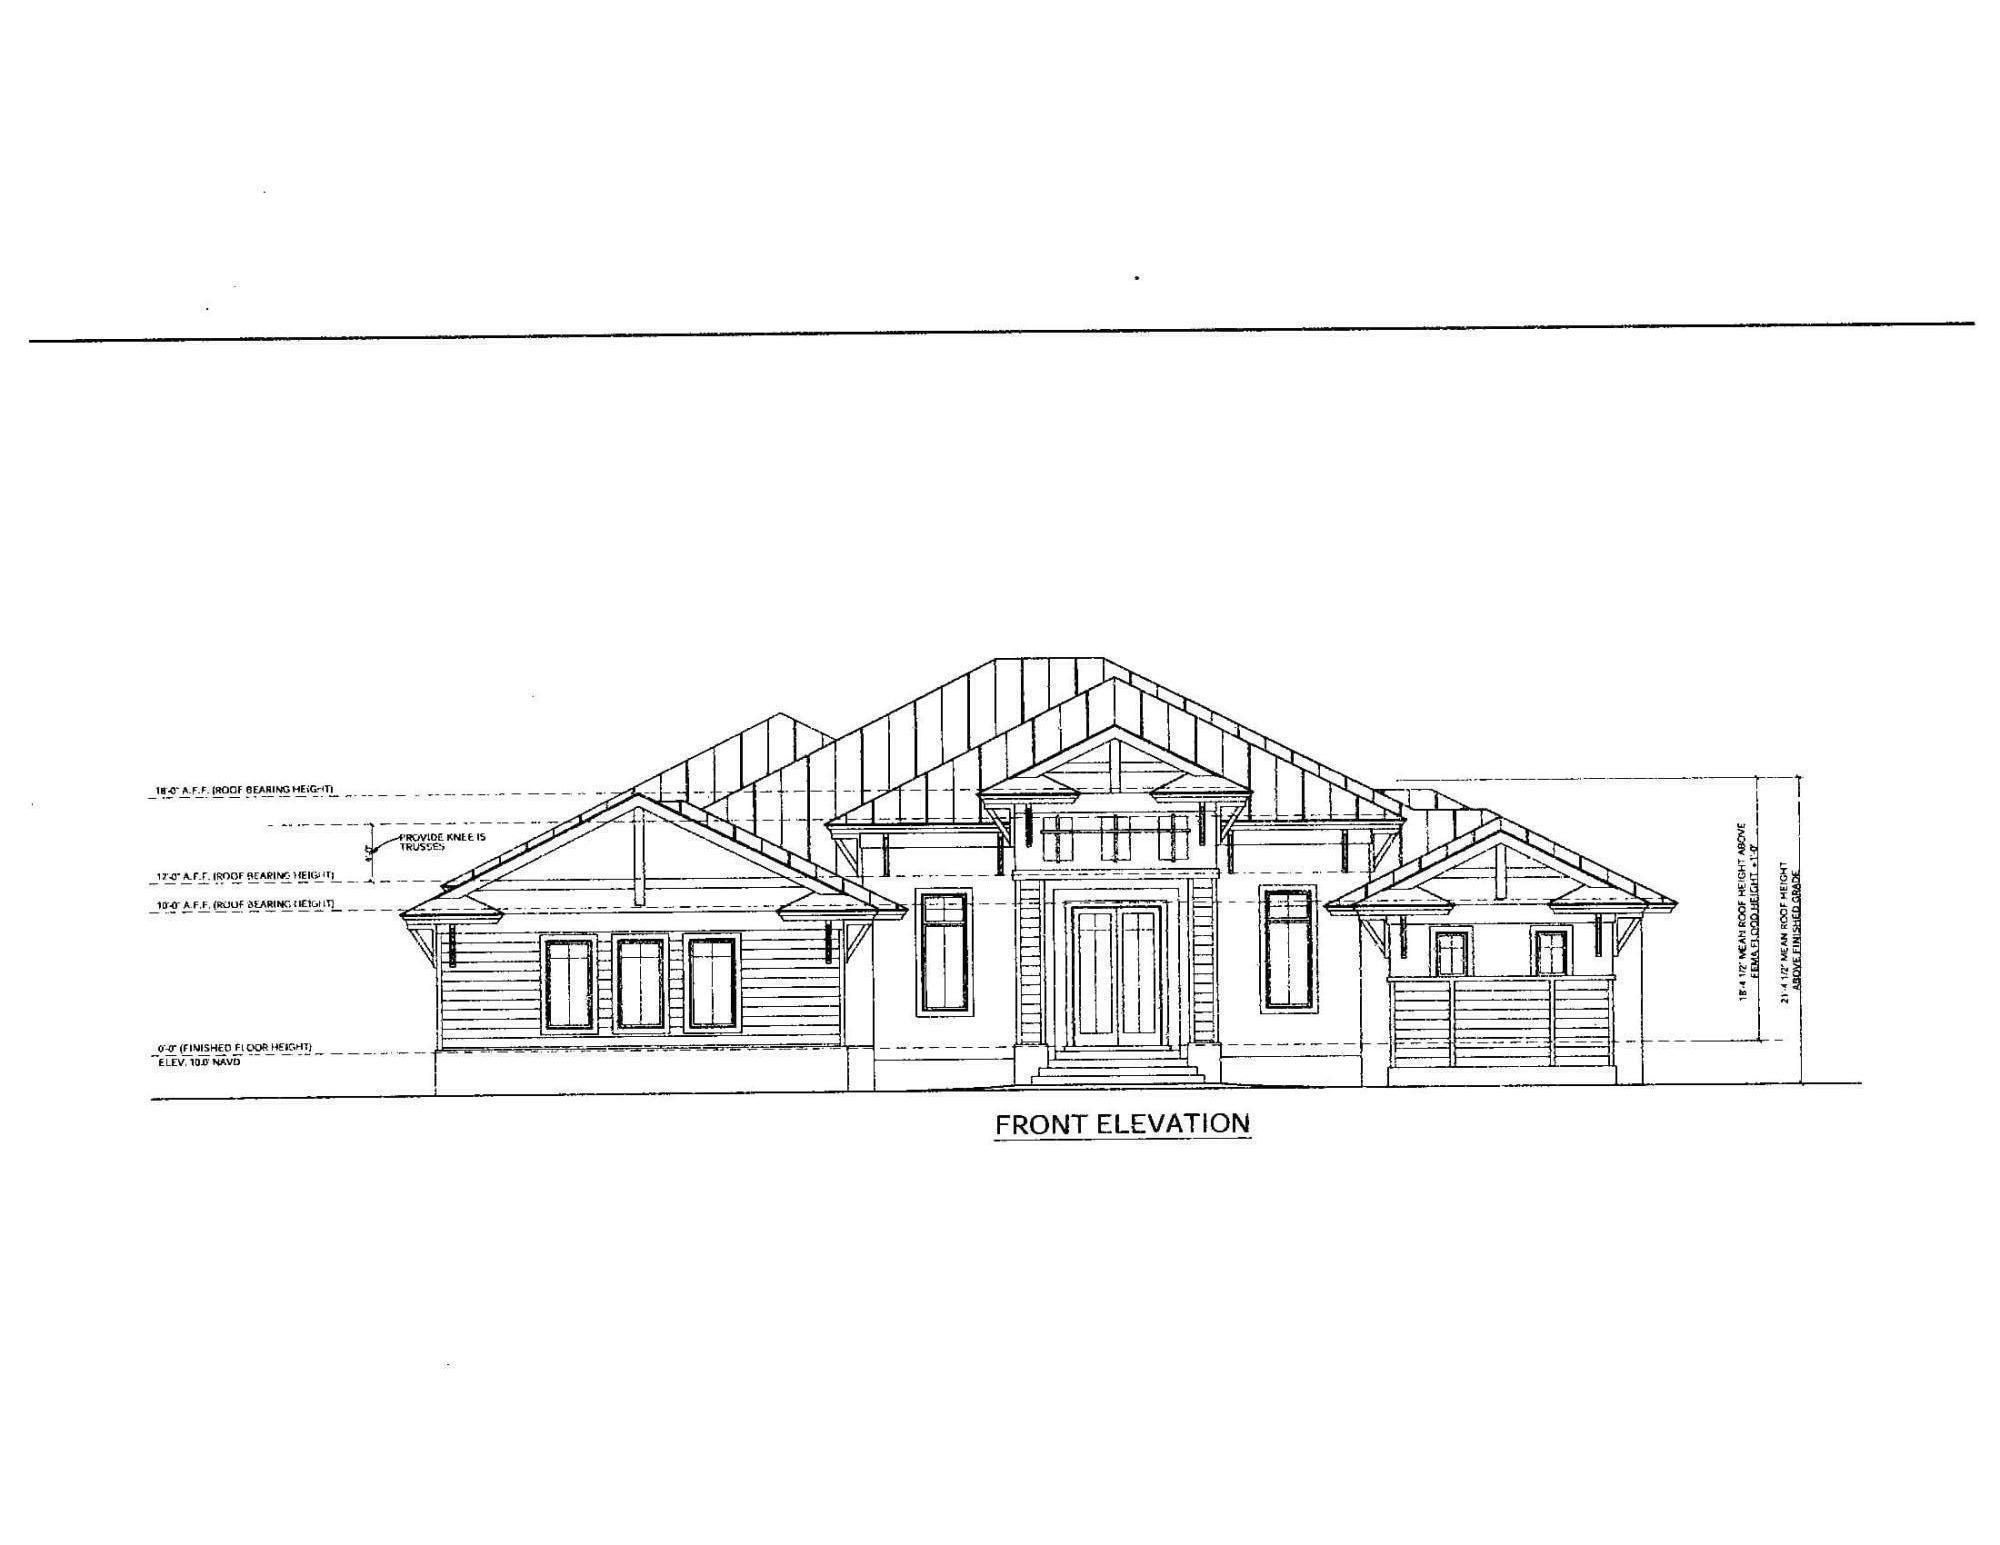 NEW Construction - coming Fall 2022 -Your water direct paradise dream home in the prestigious Estates. One stop shopping can be all yours in this APM Custom Home dream oasis (Dave Wainscott Designs of Naples). All permits in place - Gopher Tortoises recently relocated by FWC, new seawall construction underway. Master craftsmanship awaits - 4 bedrooms all with walk in closets, 4.5 baths, office, game room (or convert into home theater).  A/C area = 4,351 sq. ft., total area under roof = 6,671 sq. ft. Master suite with his & her walk in closets and 42'' x 72'' soaking tub, large tile shower with body sprays, his & hers vanity sinks. Gourmet custom kitchen with all wood cabinets & granite countertops, all high end appliances including dual 48'' stove with double oven. Custom woodwork with trayed & coffered ceilings, Laundry room with upper & lower cabinets, sink, and folding counter space. Outdoor kitchen w/42'' gas grill, refrigerator, ice maker, beverage station/sink combo. 3 car garage w/8' doors. Your outdoor recreation world includes infinity edge pool & spa tub with gas heated ''auto fill'' system. Large sun deck/ledge complete with 2 fire bowls  with water features. Lanai will be pre-wired for roll down screens. Home will also feature a ''bug mister'' station. For your direct water access pleasure - 1,414 sq. ft. dock with 12,000 pound boat lift, and 9,000 pound triple jet ski lifts which will be set at 3 separate heights. Dock features a fish cleaning station, built in bench, electric, water & lighting. So, HURRY before all the finishing selections have been decided upon.